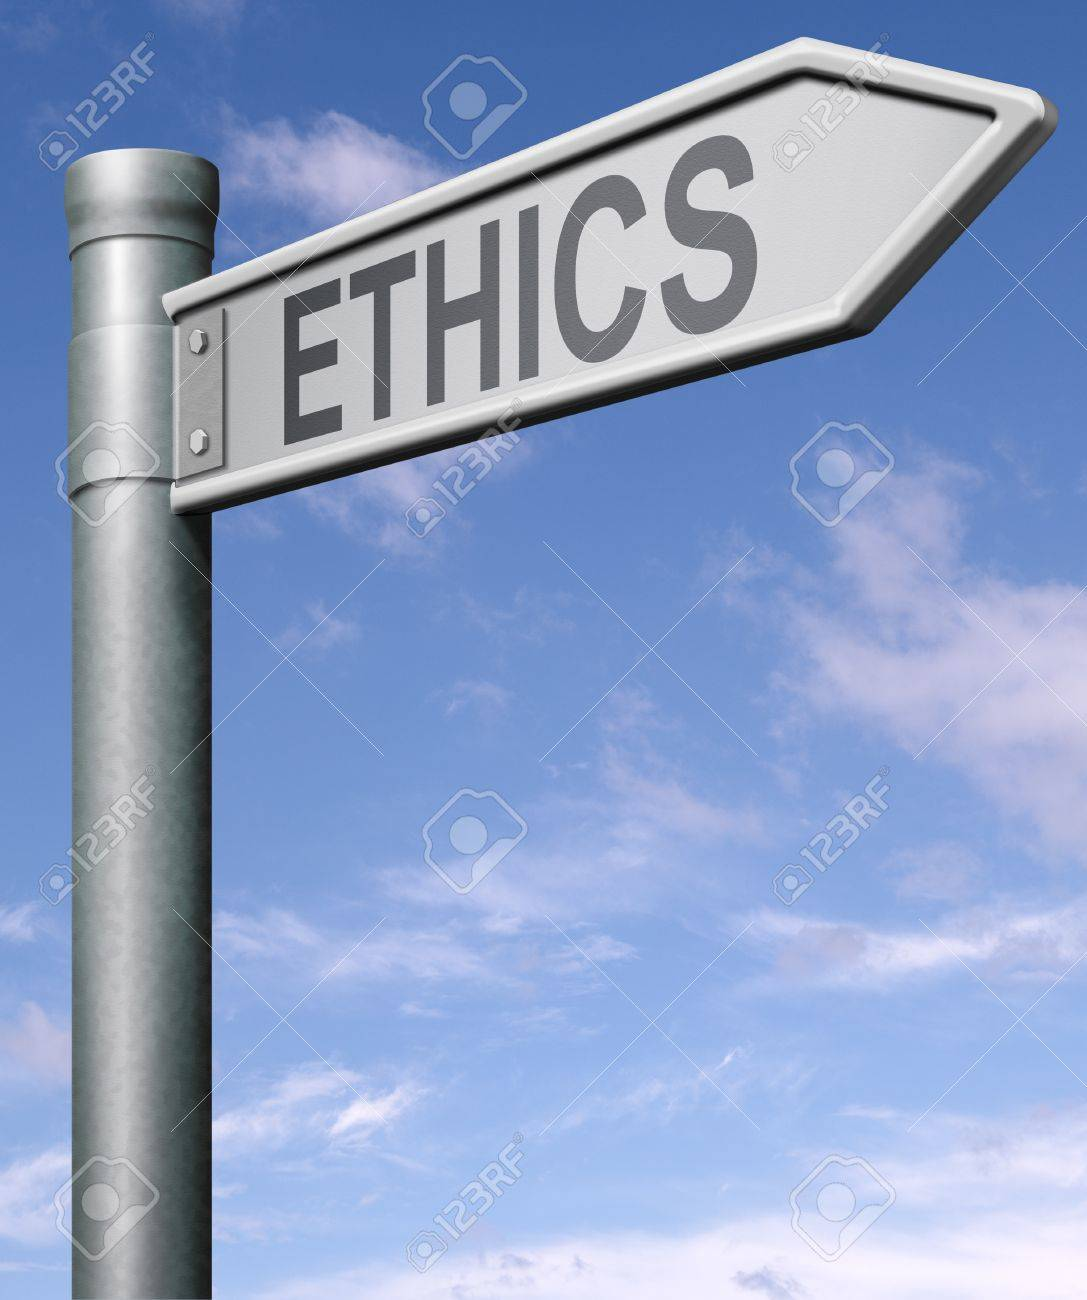 ethics road sign arrow indicating way to choice between good and bad or evil Stock Photo - 9497572